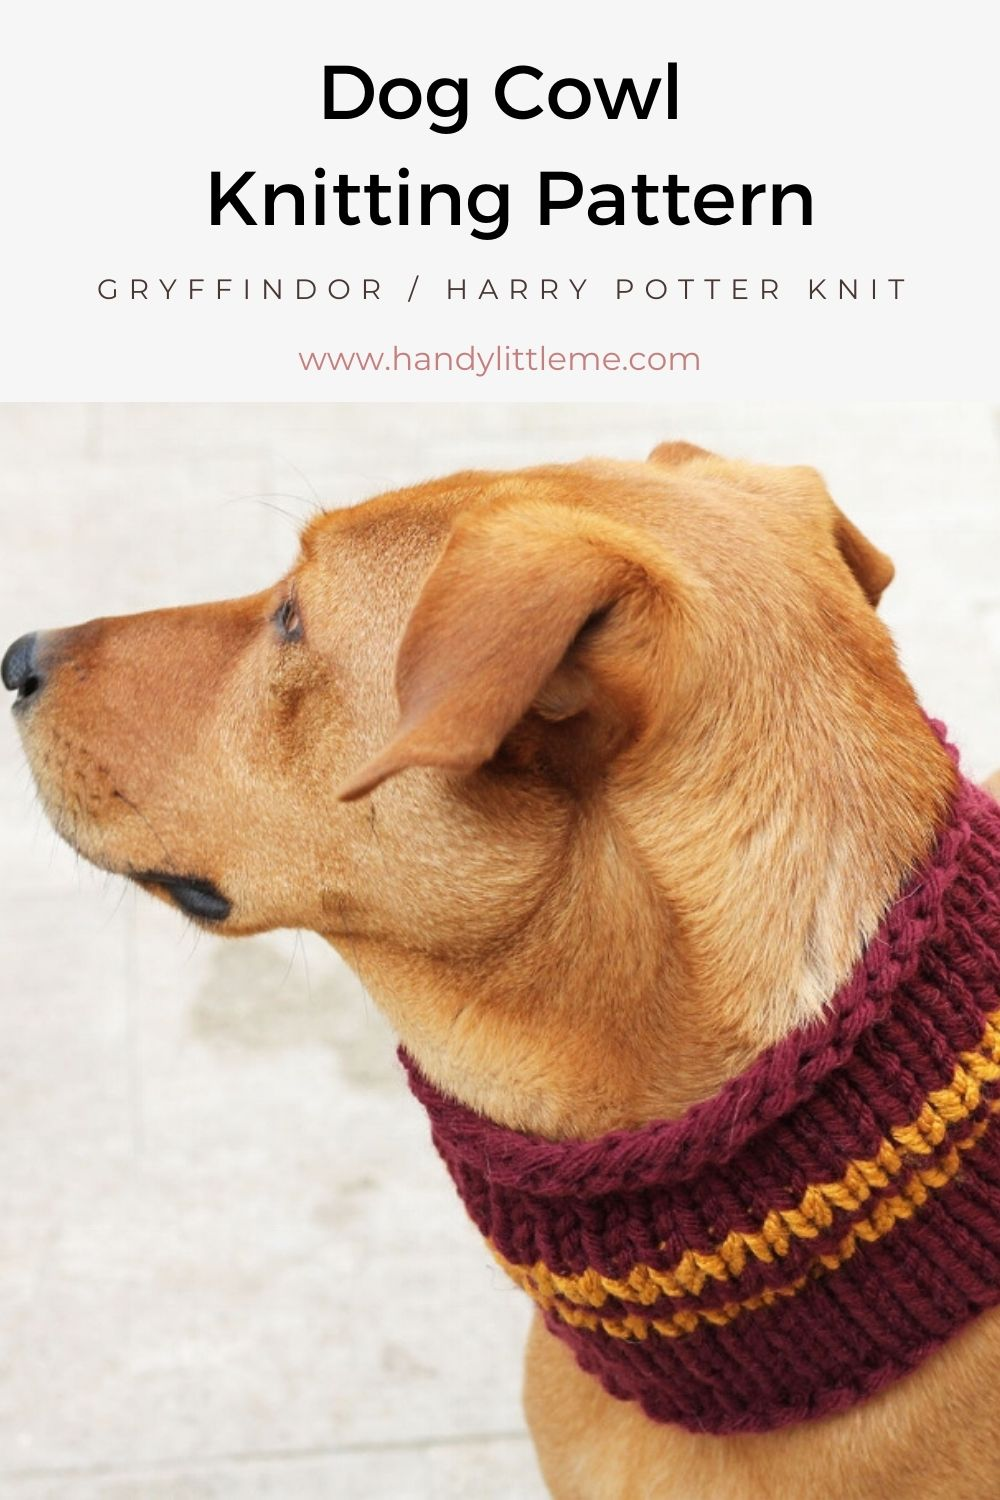 Knitted Harry Potter Scarf for a dog